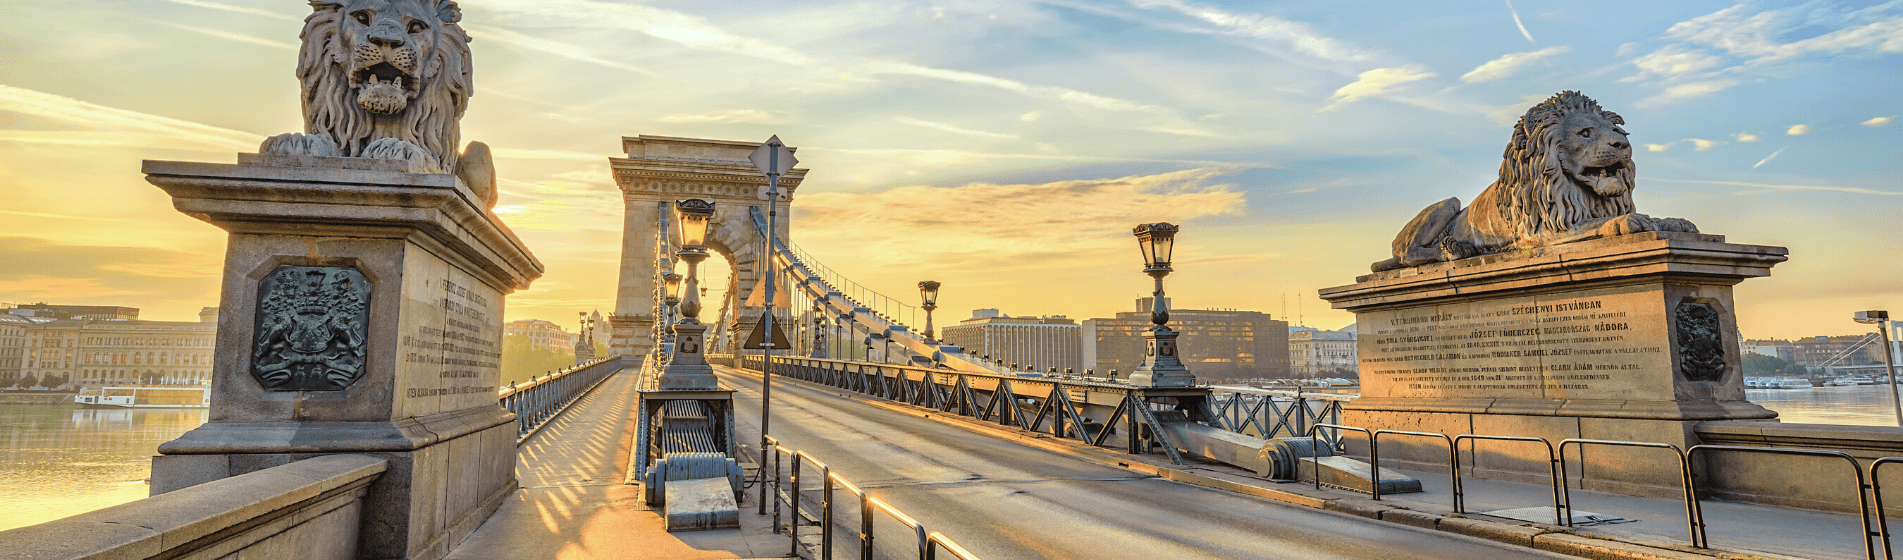 Lessons from Hungary on the coming economic collapse